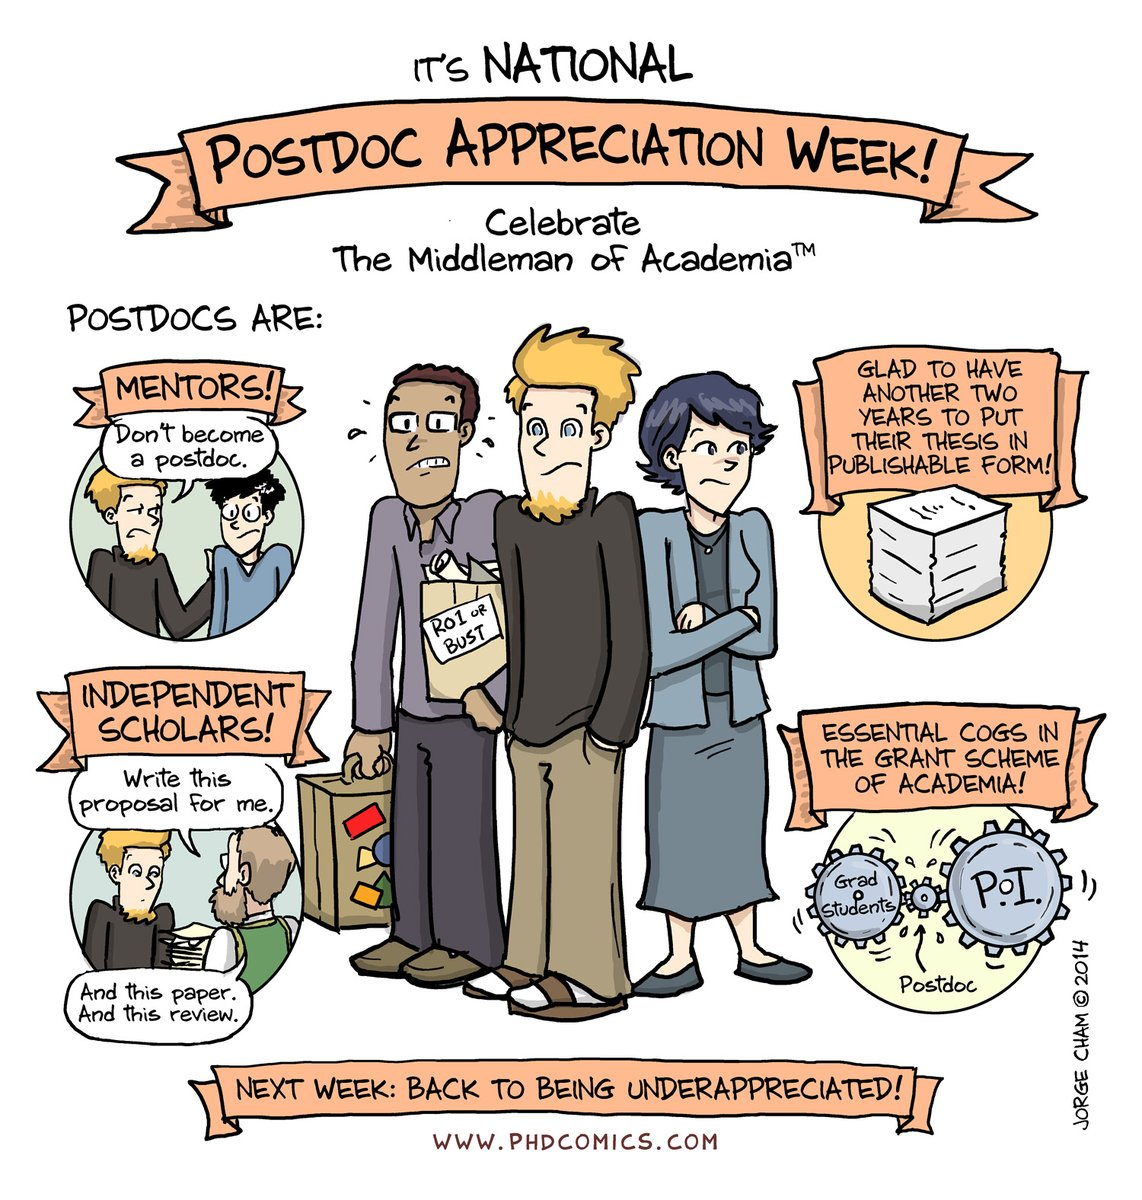 Happy Postdoc Appreciation Week https://t.co/0ltMRIpniq